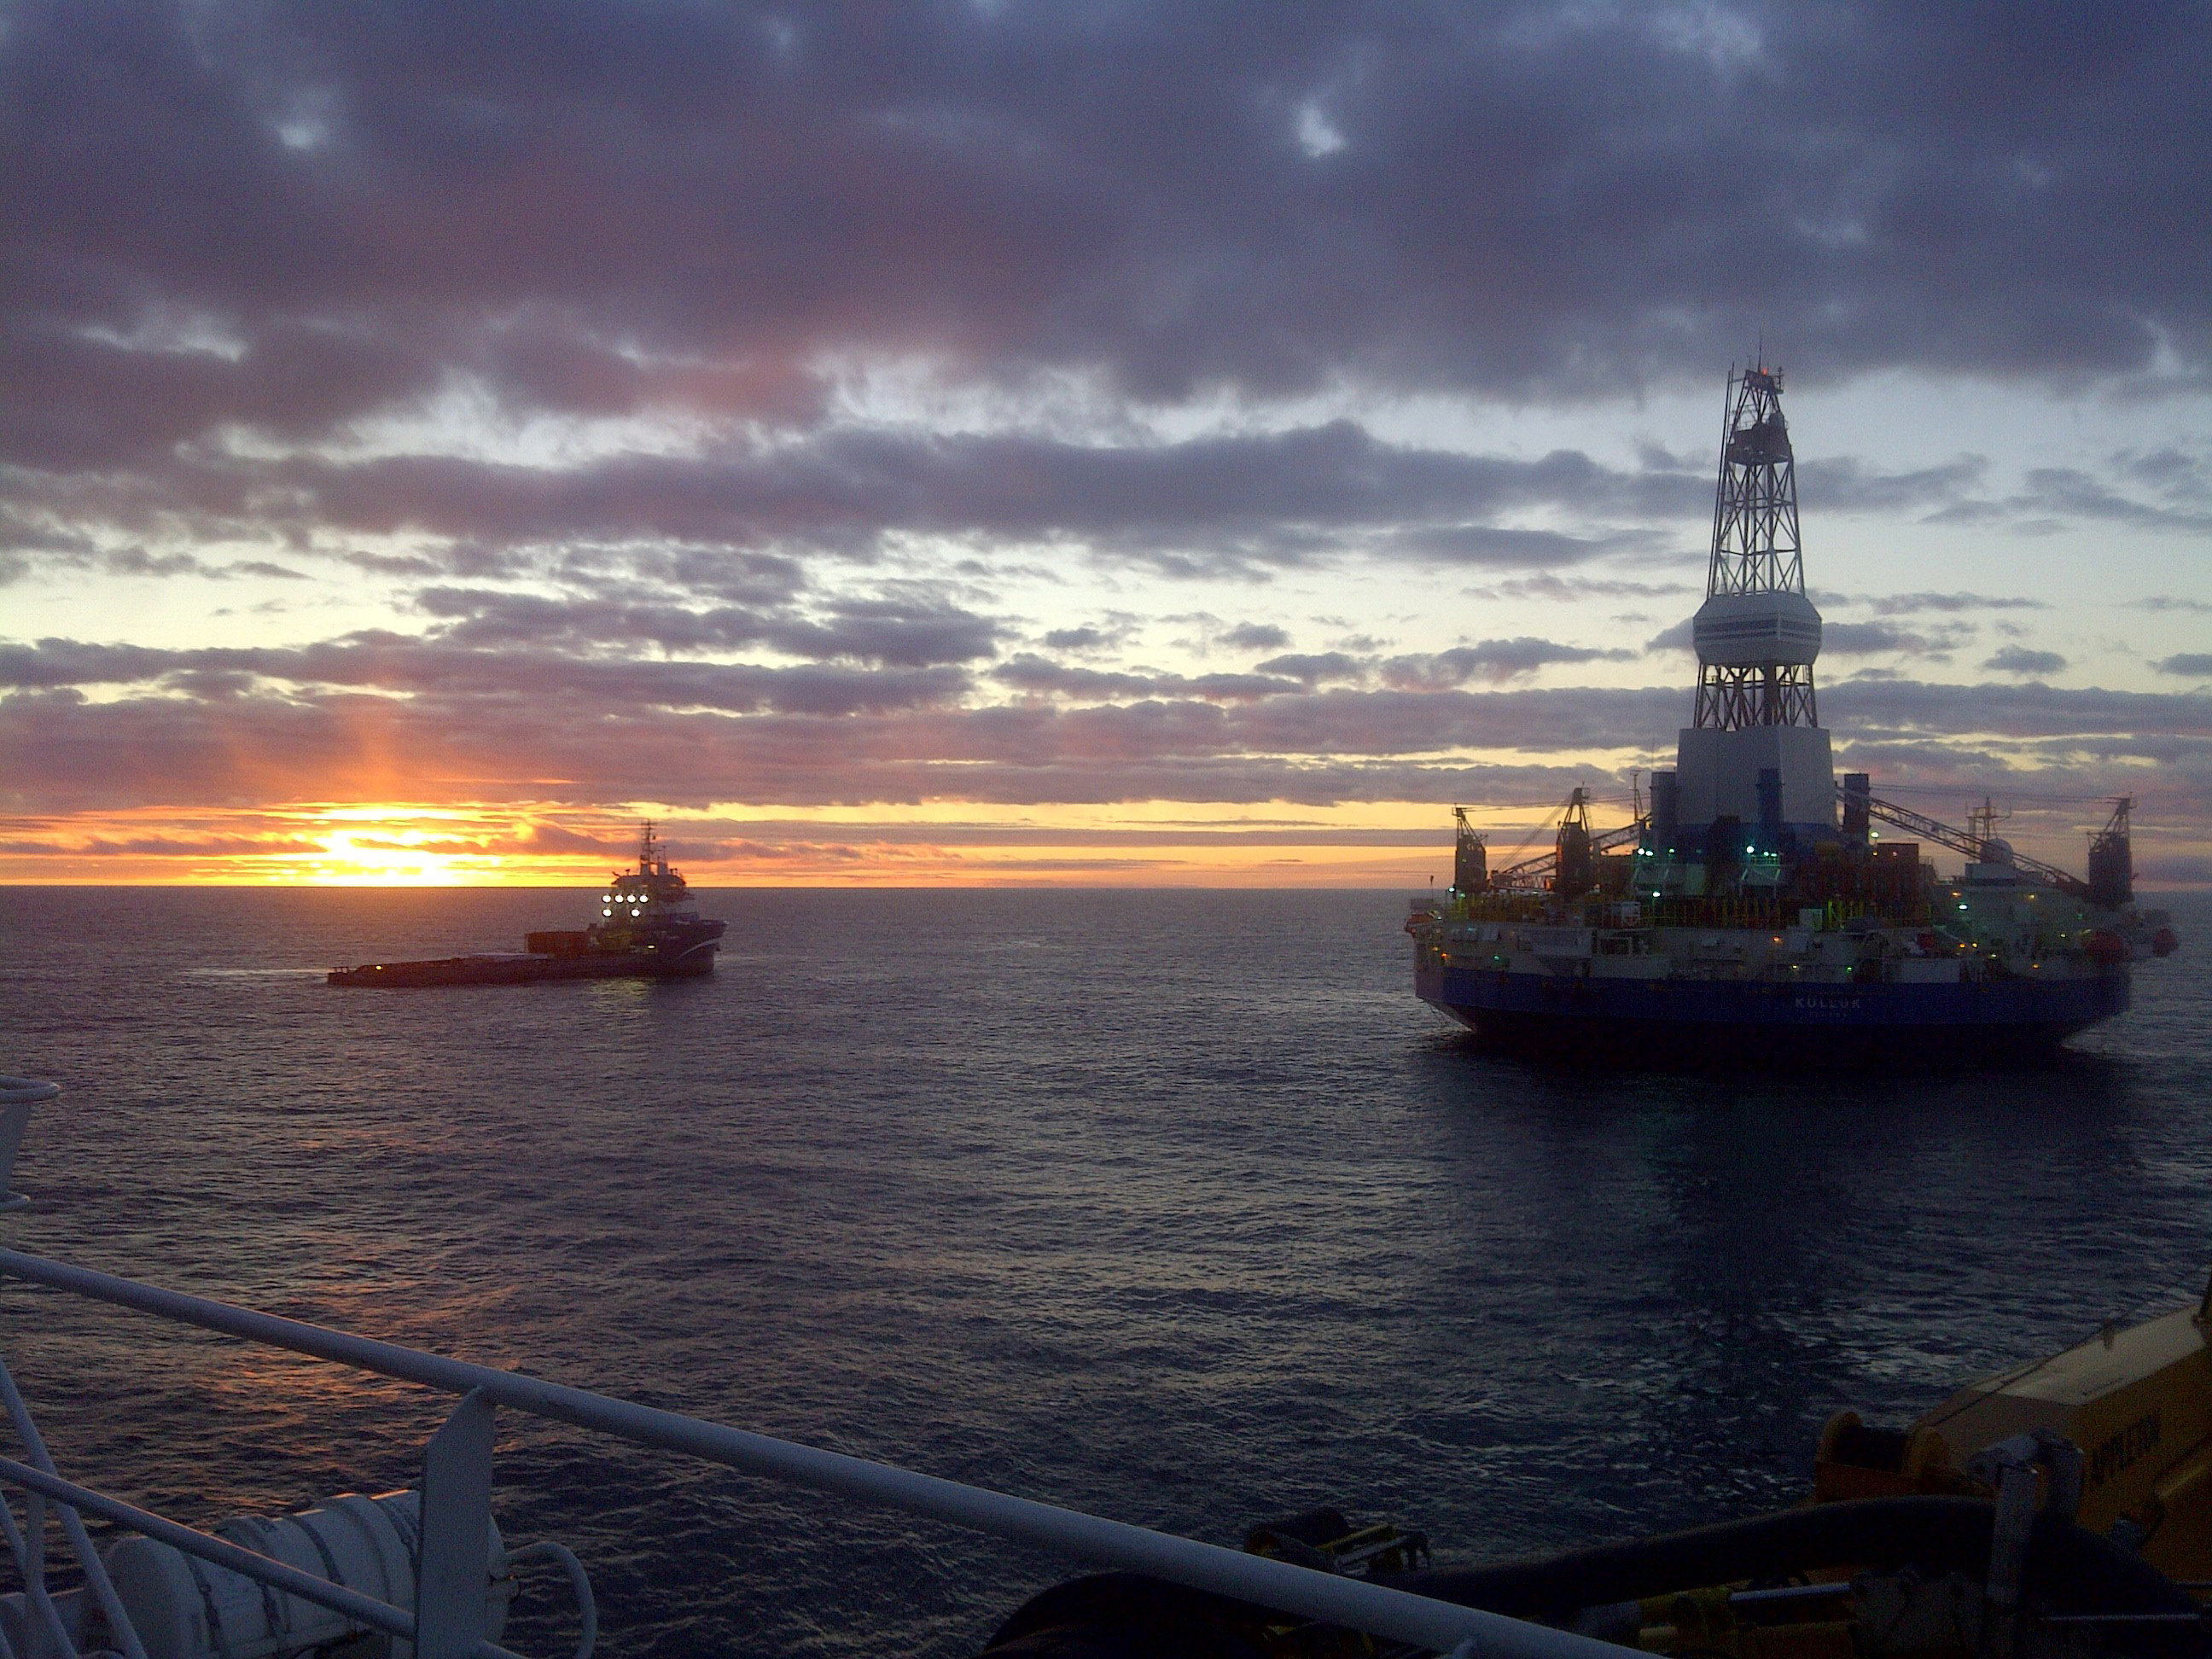 "photo courtesy Shell Alaska The Kulluk conical drilling unit works in the Beaufort Sea at a Shell Alaska prospect recently offshore from the North Slope. The rig was made specifically to drill in Arctic conditions and is owned outright by Shell. Following several weeks of drilling at Shell Alaska OCS prospects, Shell has concluded its 2012 exploratory drilling programs in the Beaufort and Chukchi Seas. ""The work we accomplished in drilling the top portion of the Burger-A well in the Chukchi Sea and the Sivulliq well in the Beaufort Sea will go a long way in positioning Shell for a successful drilling program in 2013,"" said spokesman Curtis Smith. ""Shell deployed numerous assets and rotated thousands of employees to the Arctic for the first time in 20 years. We are very pleased with the work we accomplished this year and look forward to picking up where we left off when the sea ice retreats in 2013."""